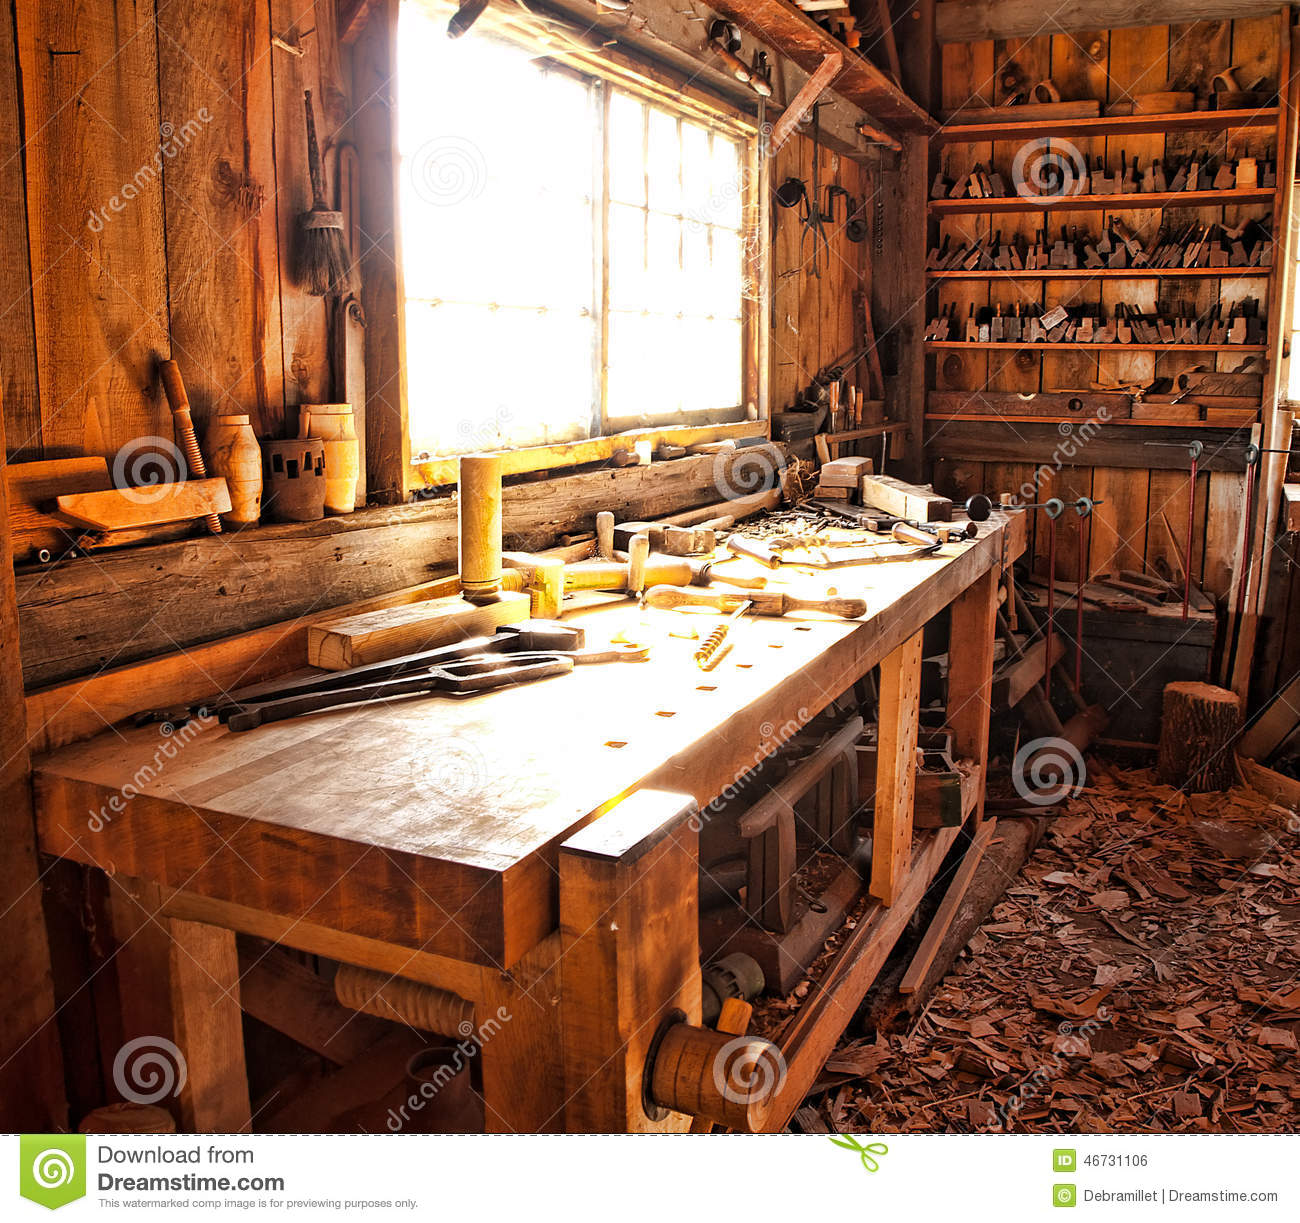 Woodworkers Shop Stock Photo Image Of Messy Barn